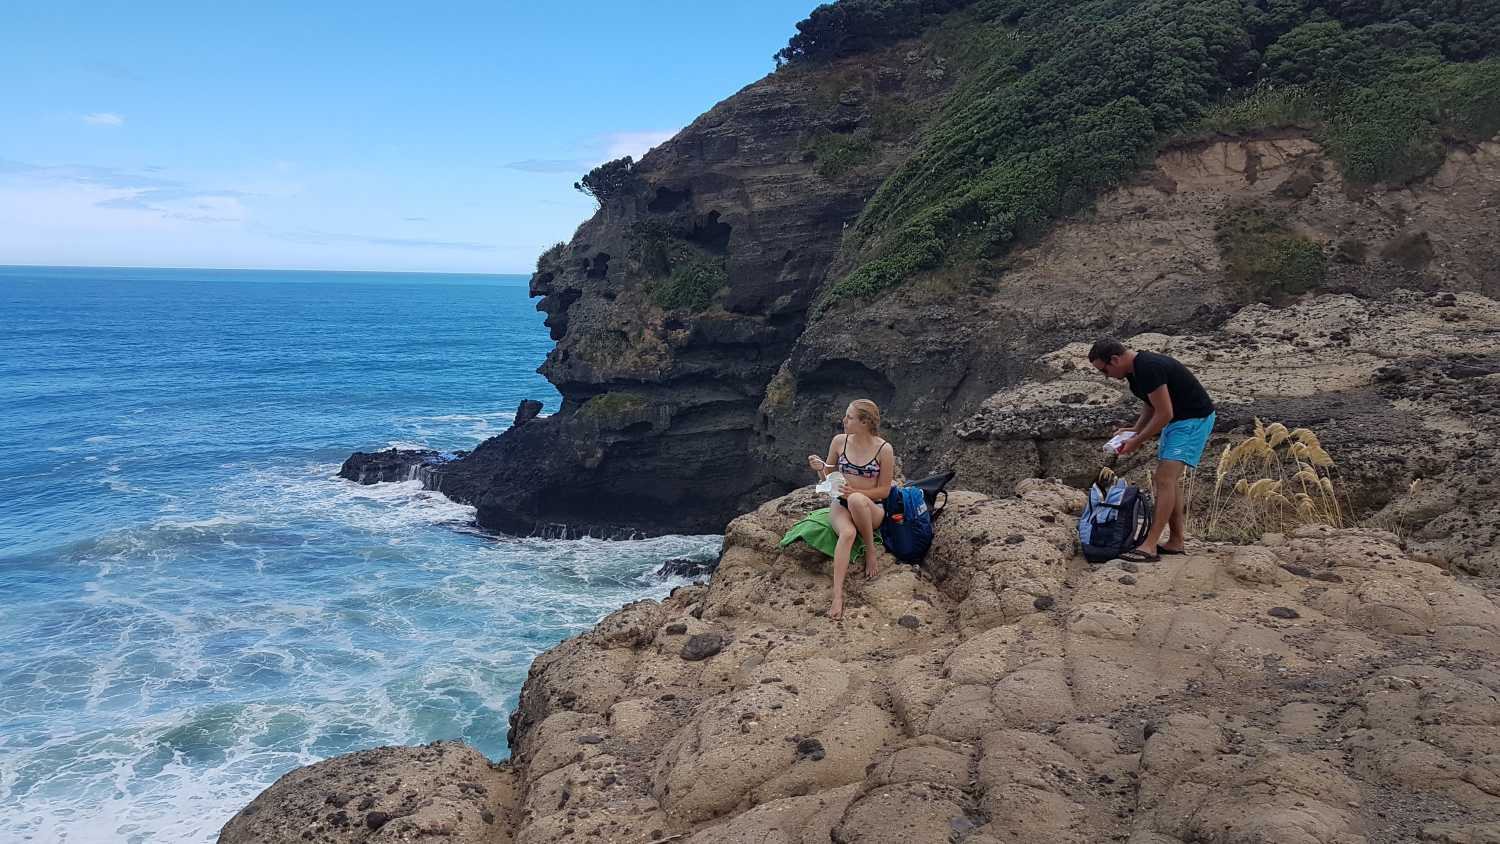 Tour group explores hidden places at Piha Beach